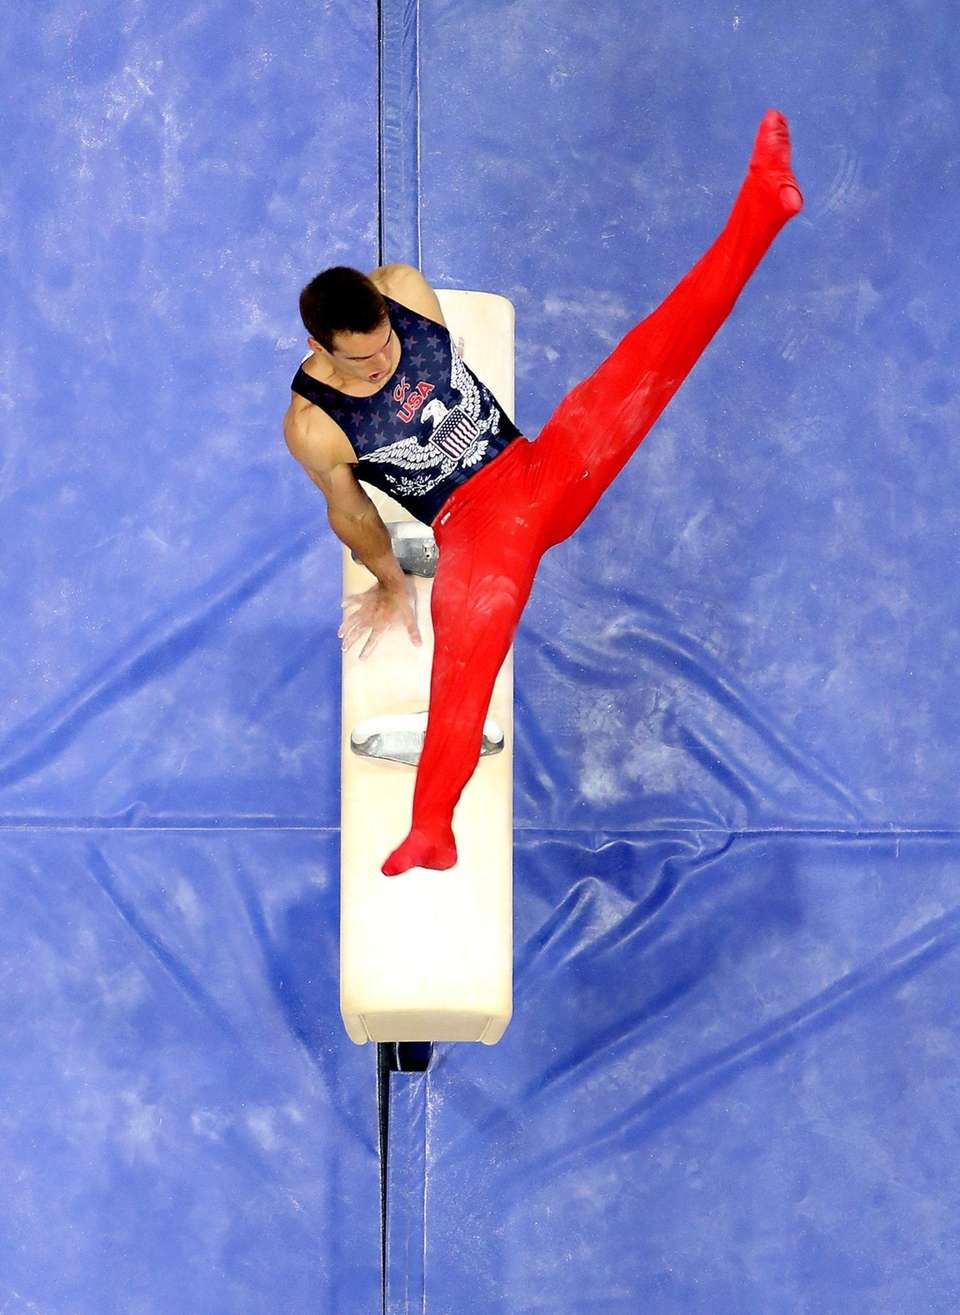 Mikulak competes on the pommel horse during the